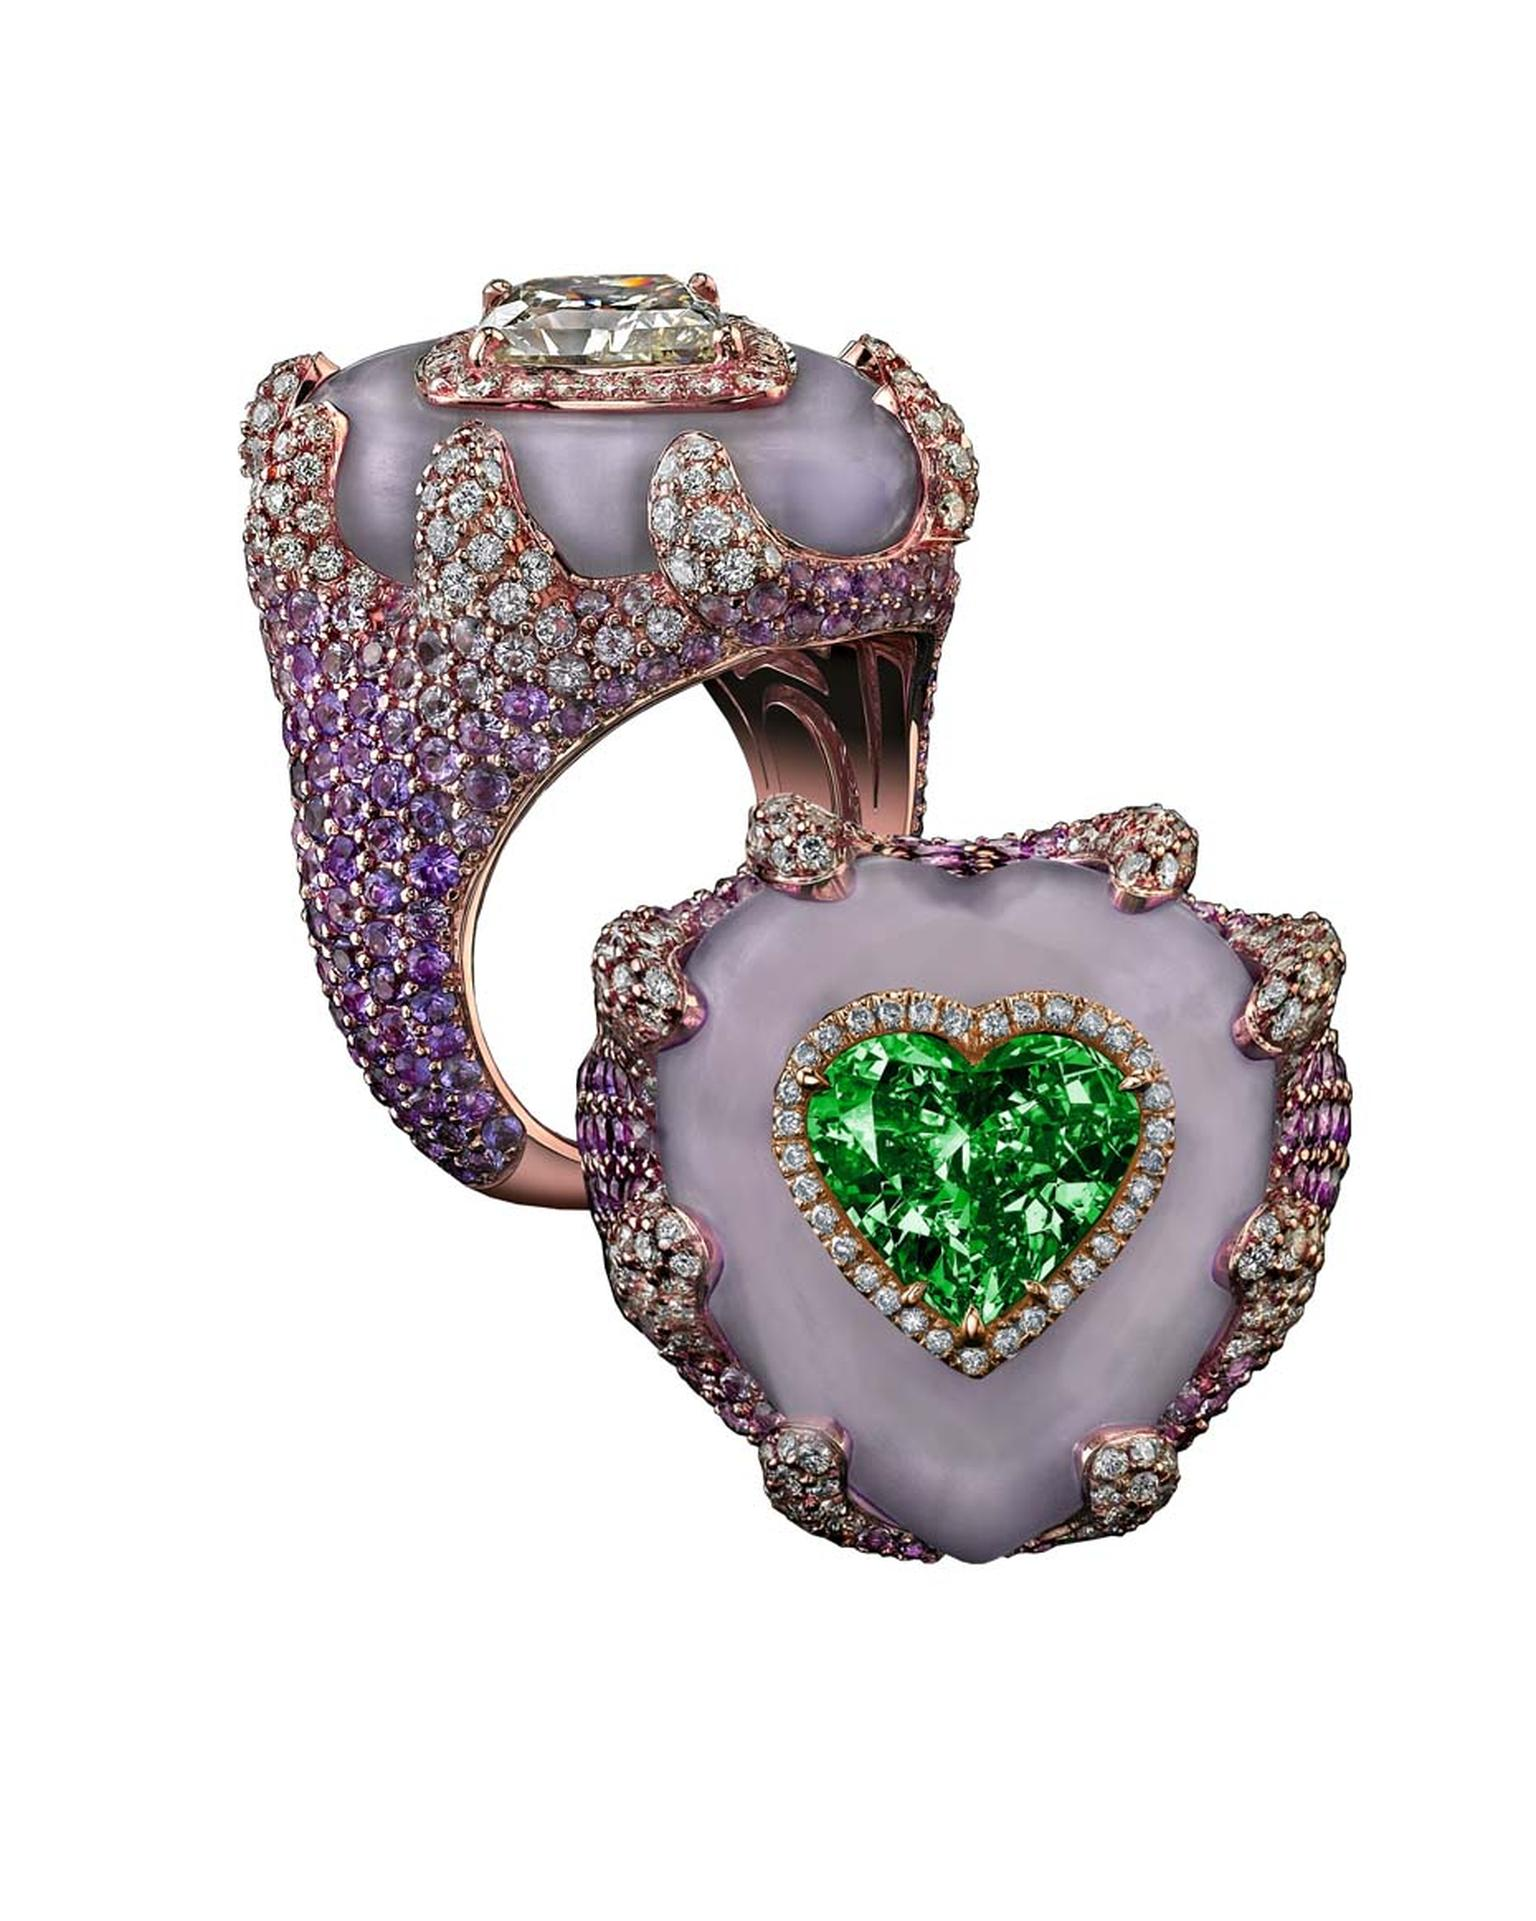 Robert Procop Exceptional Jewels collection 7.06ct Emerald Heart ring